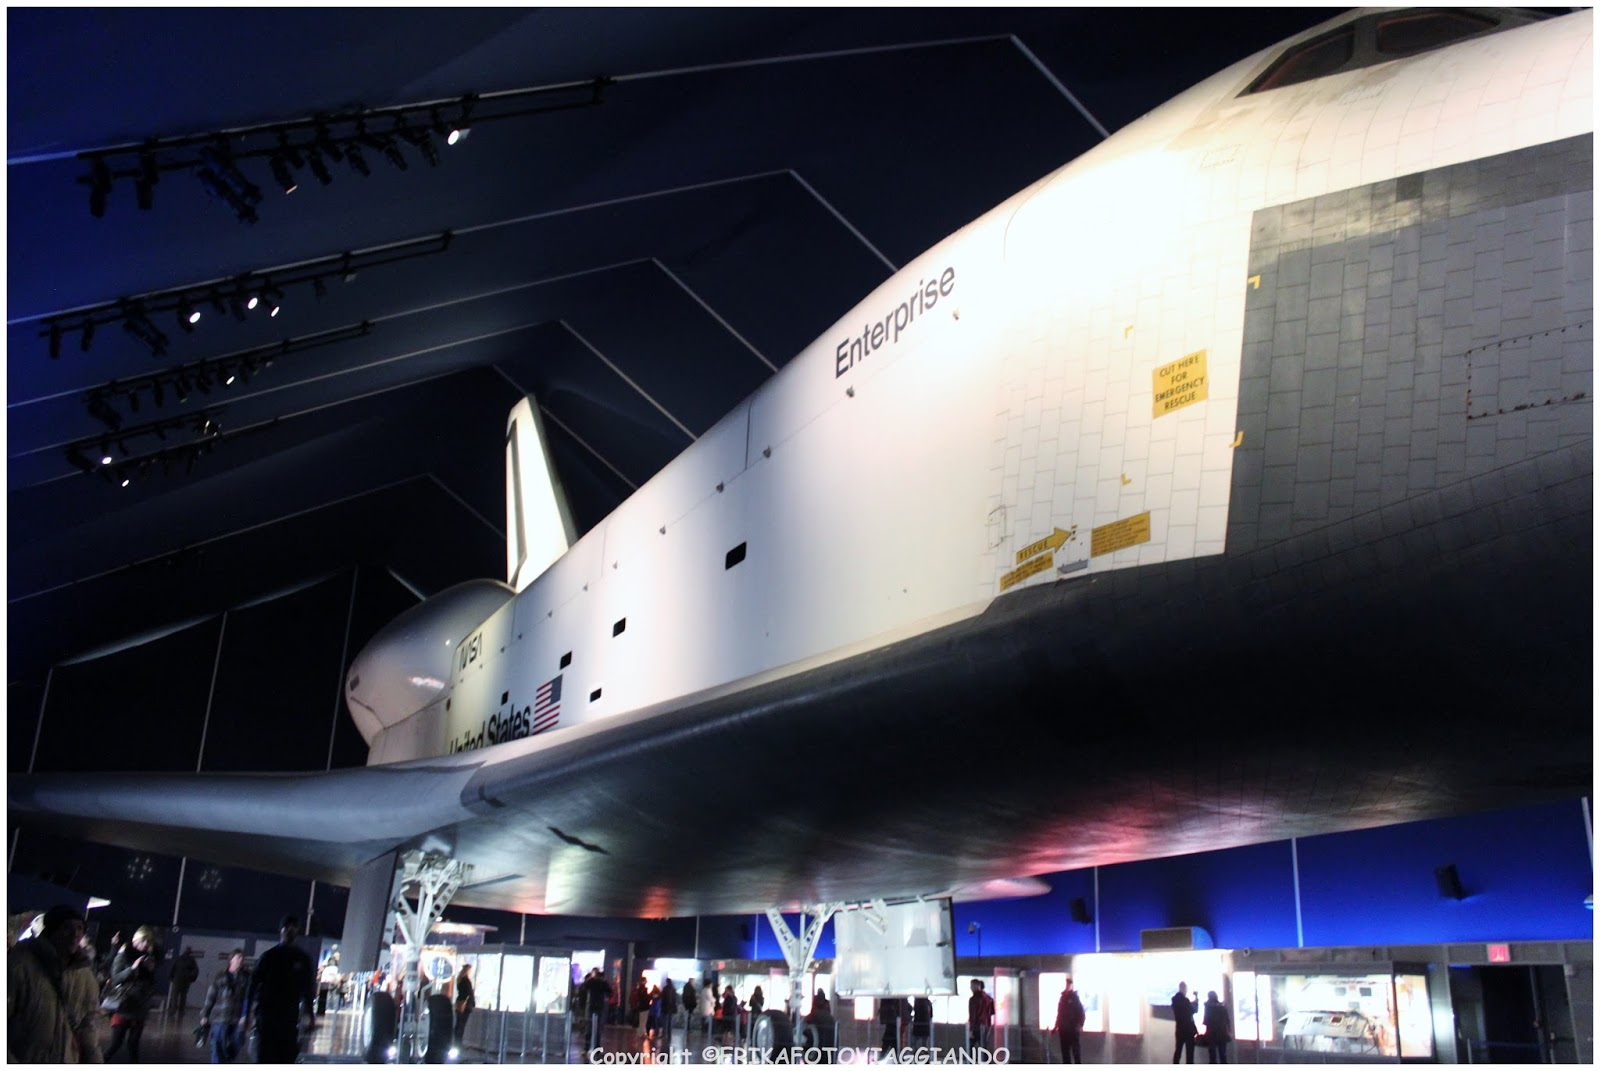 2017 newest space shuttle - photo #42